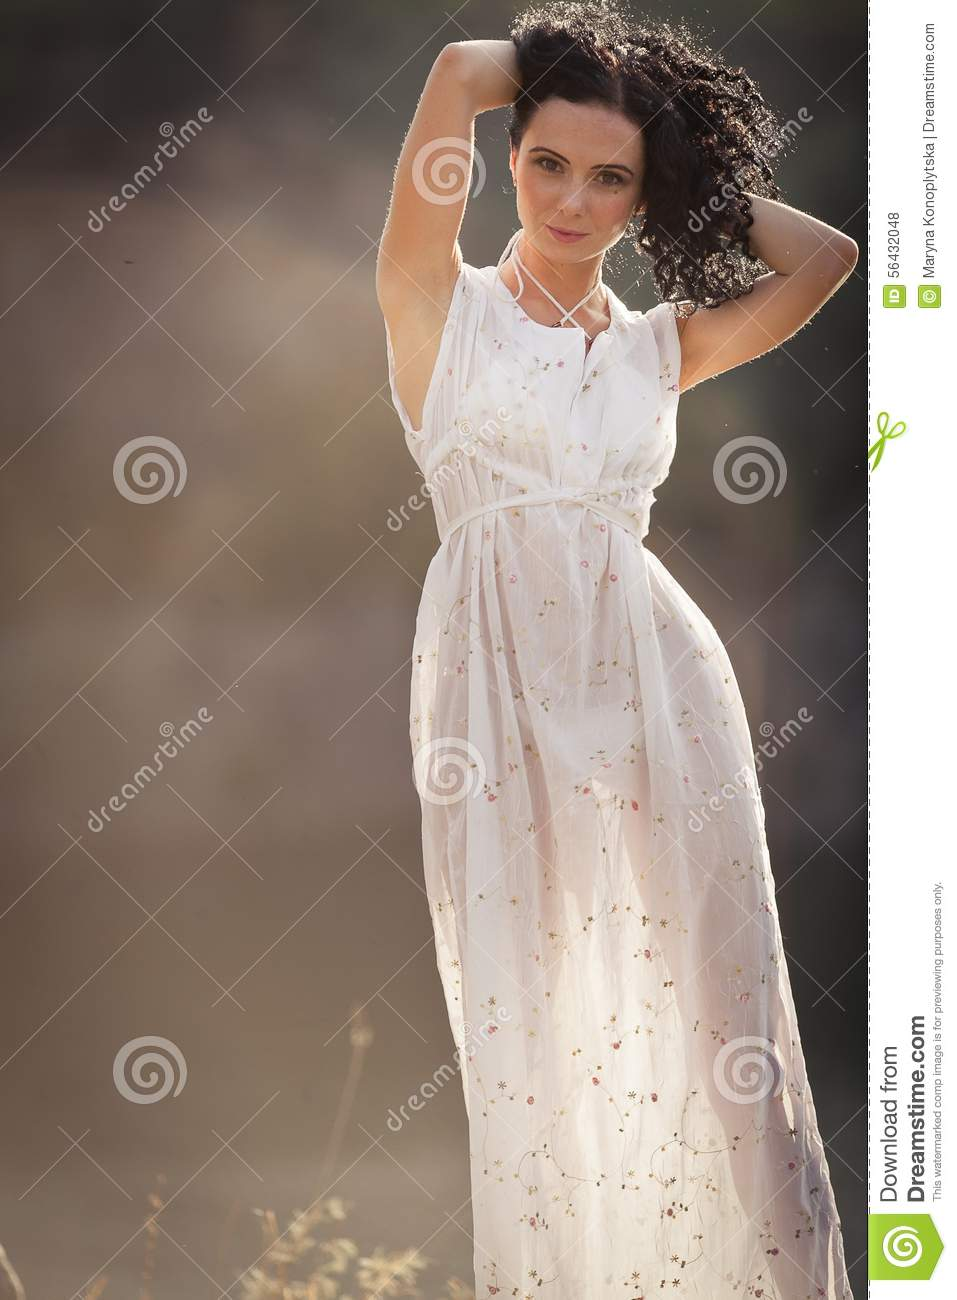 The Natural Beauty And Purity Stock Photo - Image of natural, gown ...